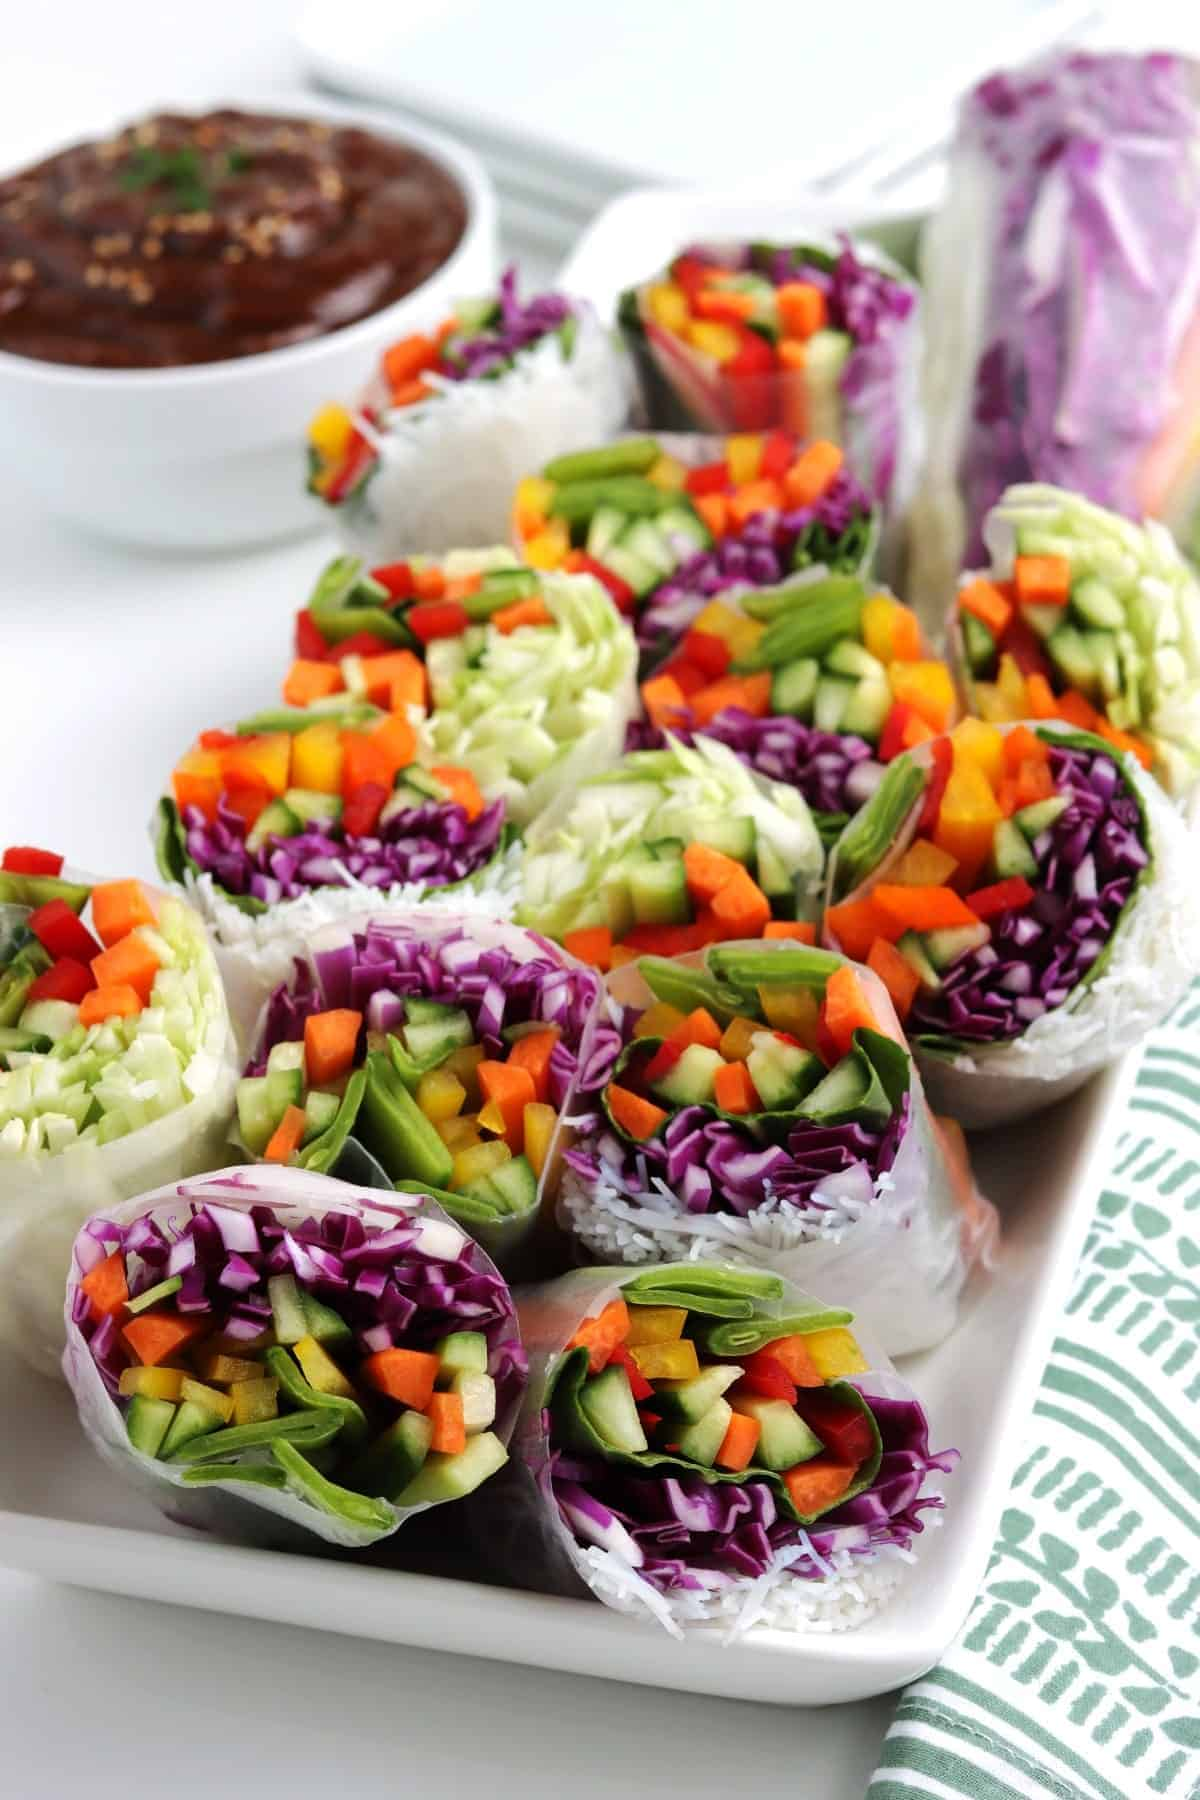 Platter of Vietnamese summer rolls and a bowl full of peanut dipping sauce.